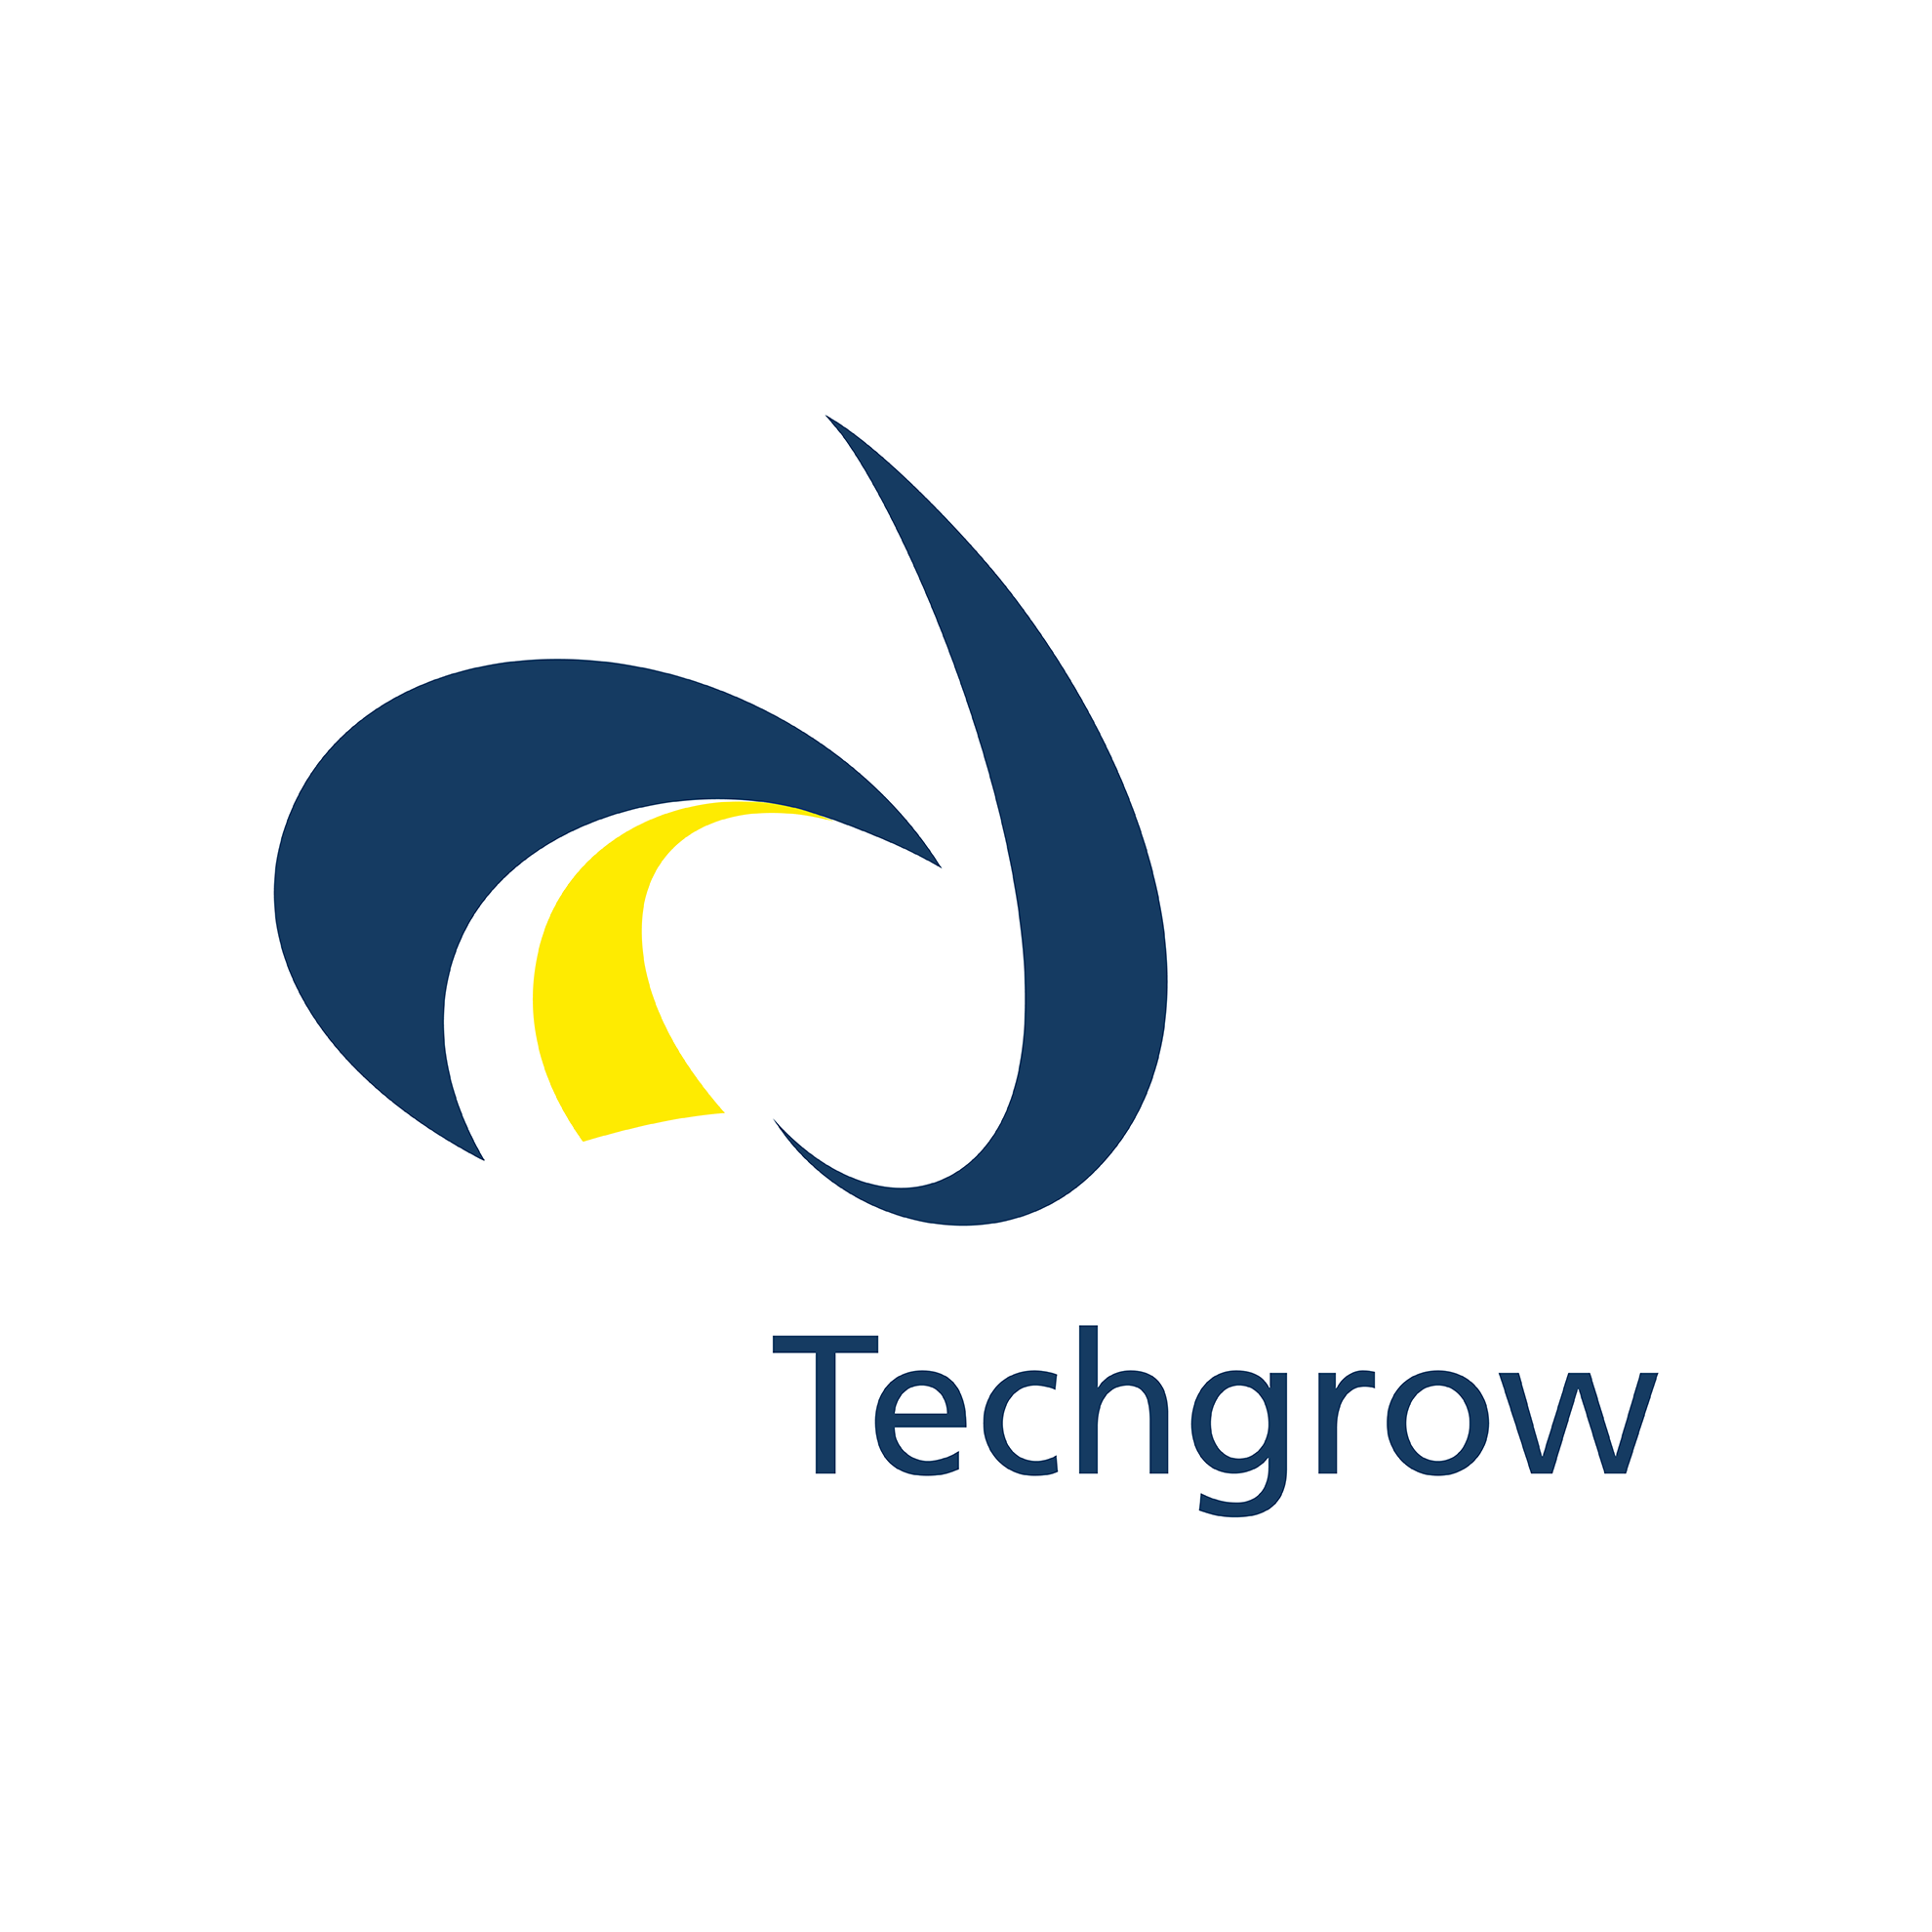 Techgrow logo